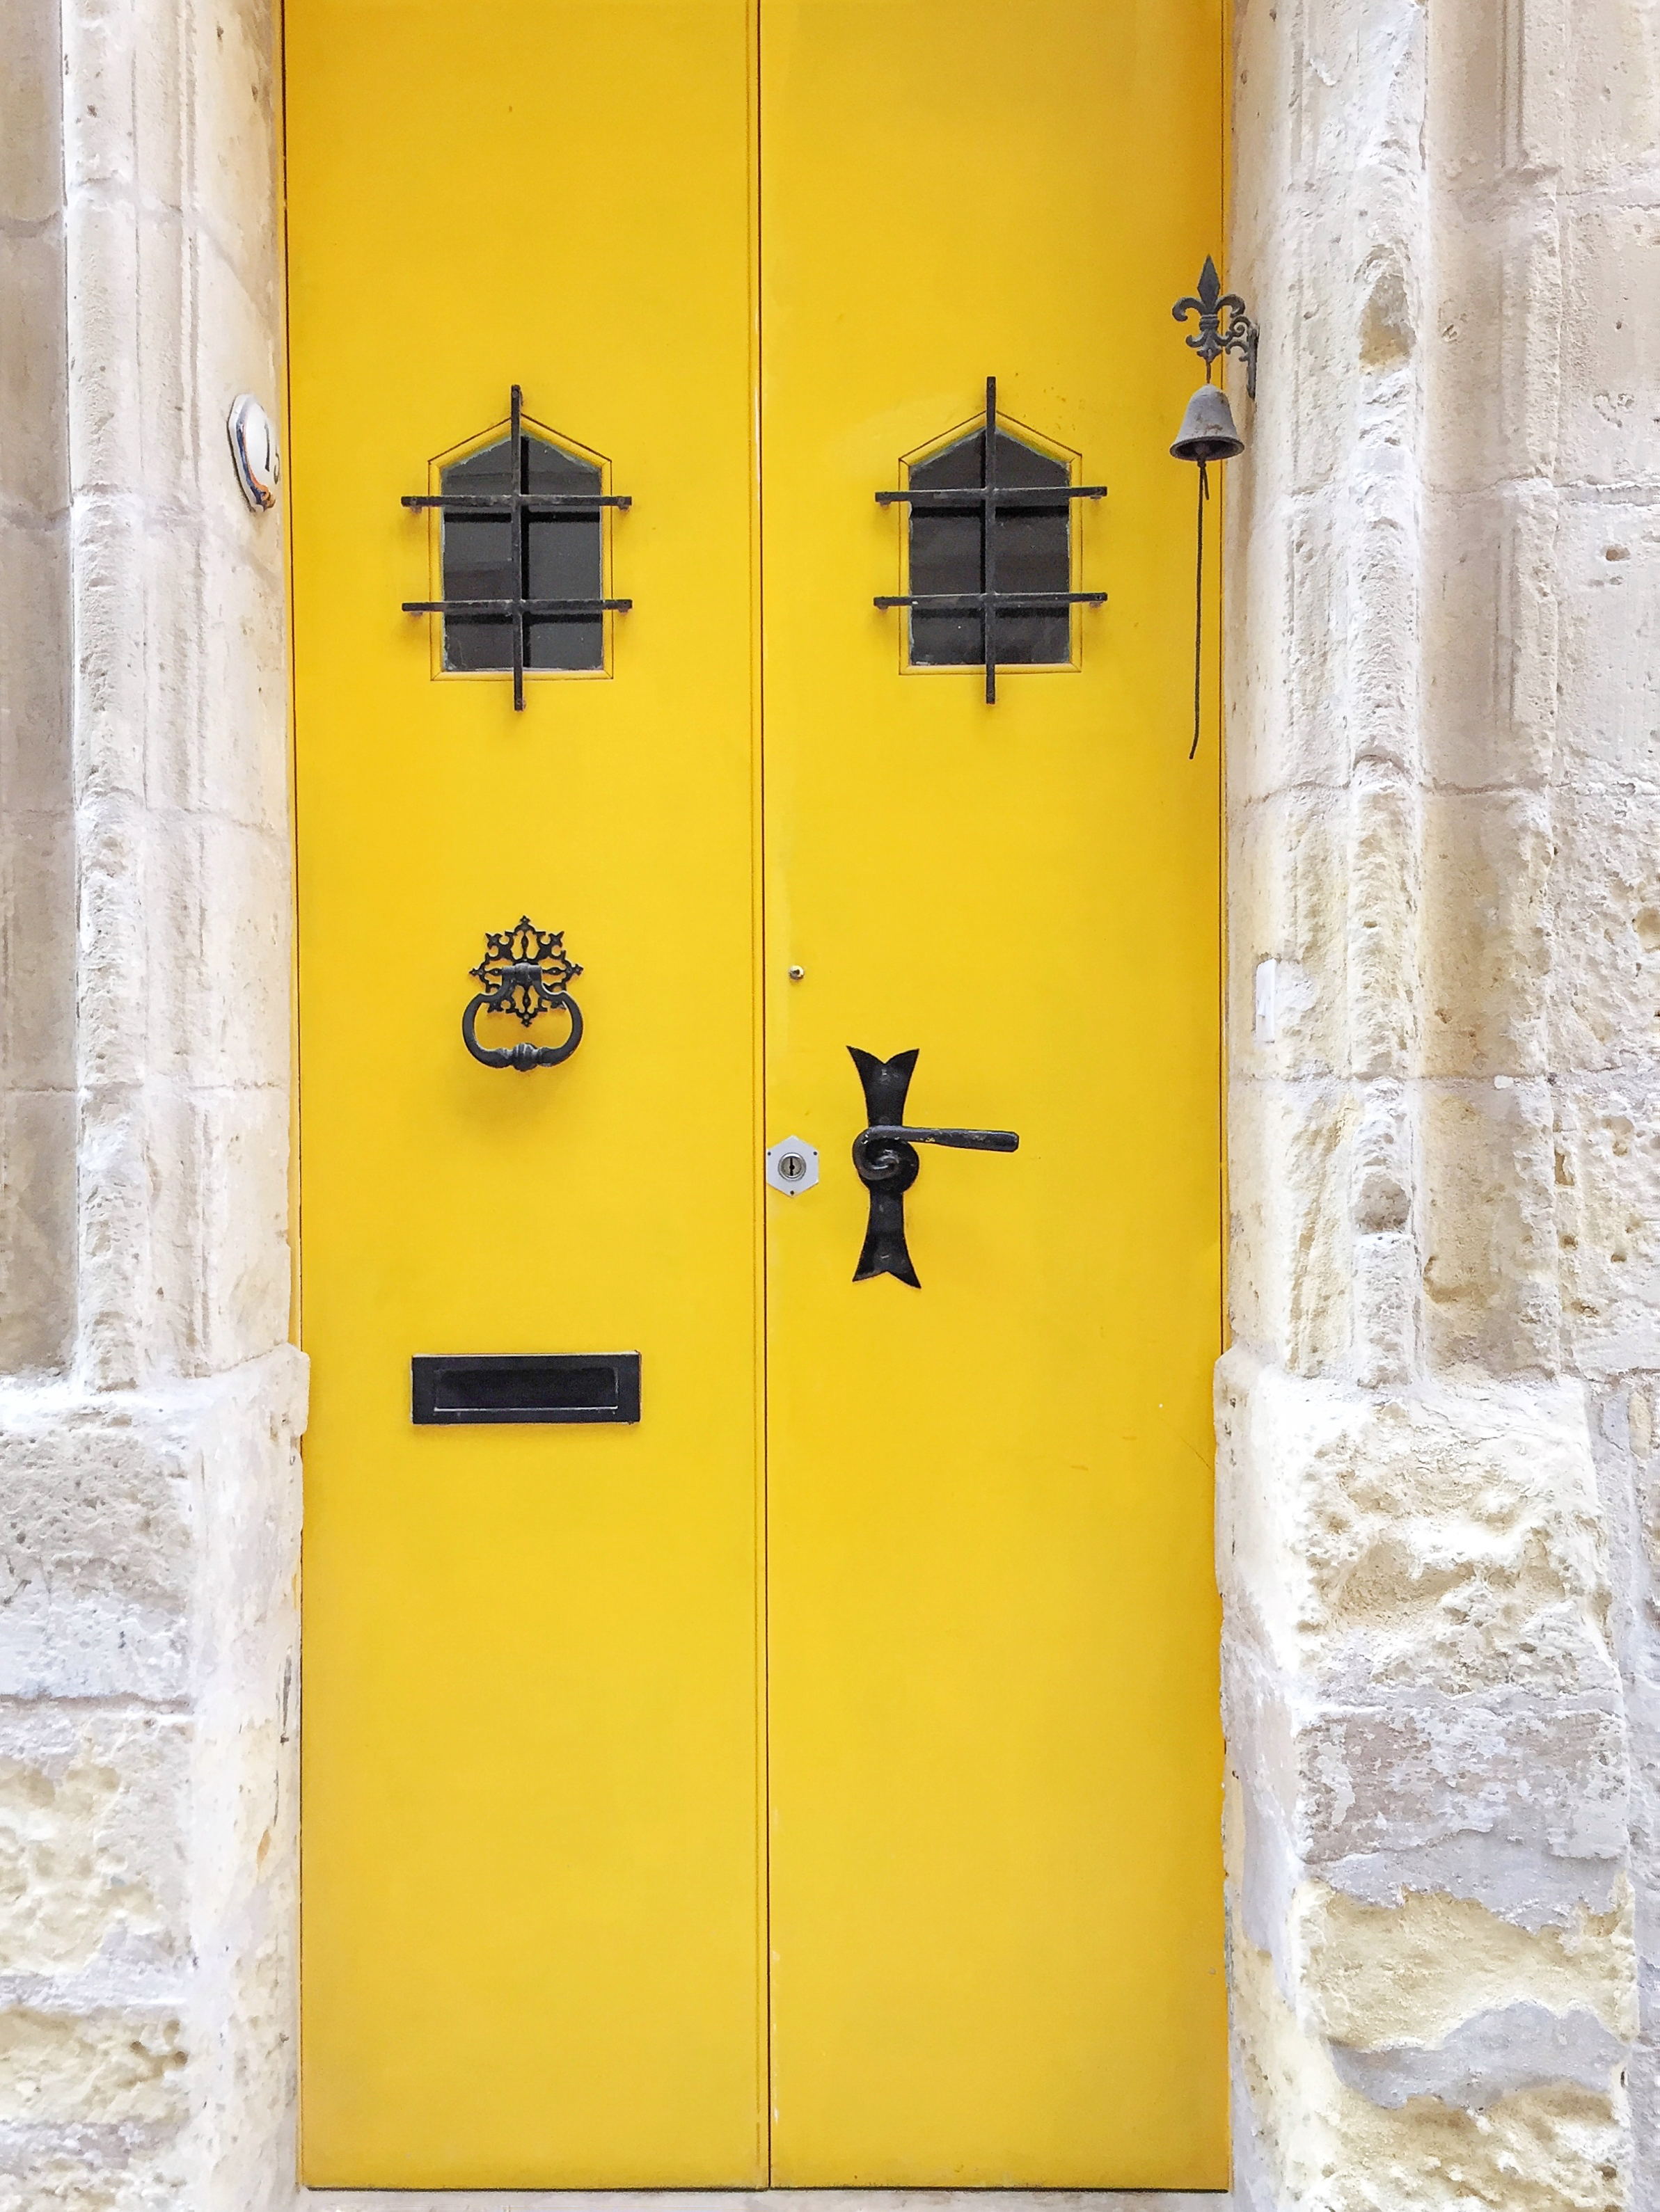 Doors of Malta   Birgu   - Thinking About Appreciation For Quality In Malta   Malta, Europe   DoLessGetMoreDone.com   - Travel Documentary Photography - search for Liveability   Sustainability